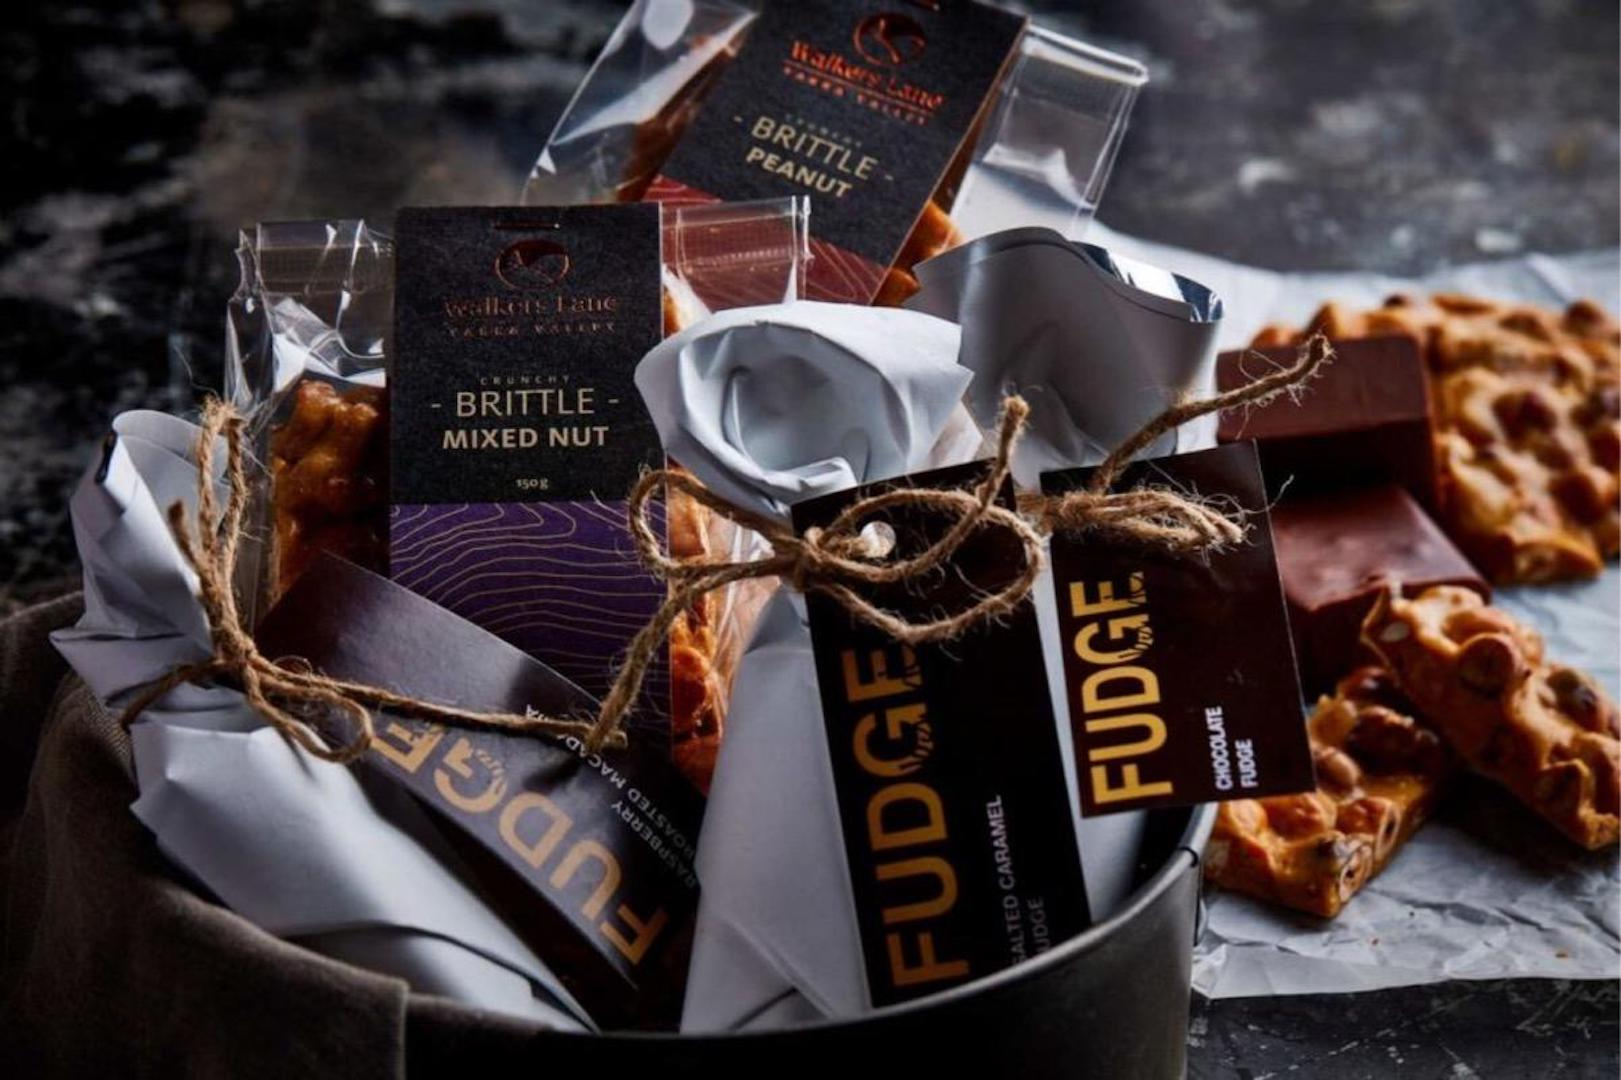 fudge and brittle pack Yarra Valley